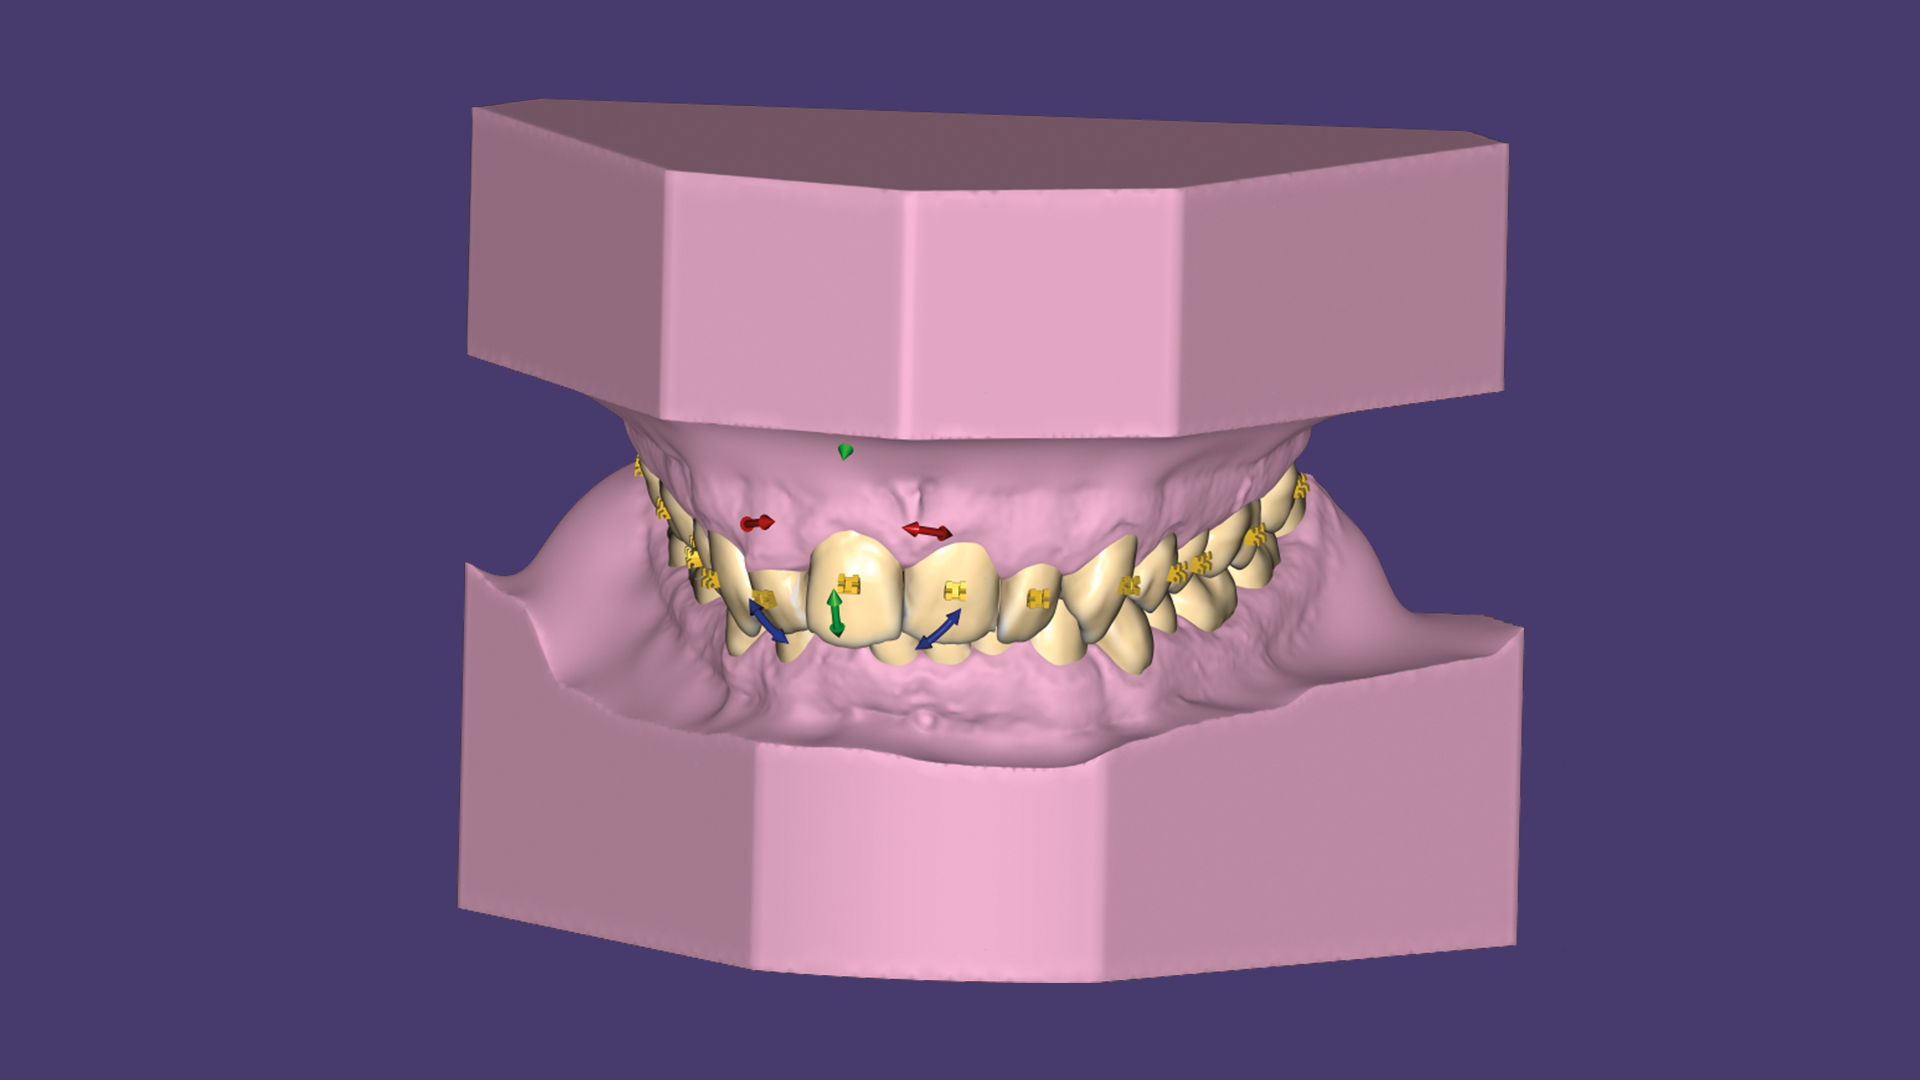 Use our ortho modules together with TruSmile Technology, for near photorealistic tooth rendering